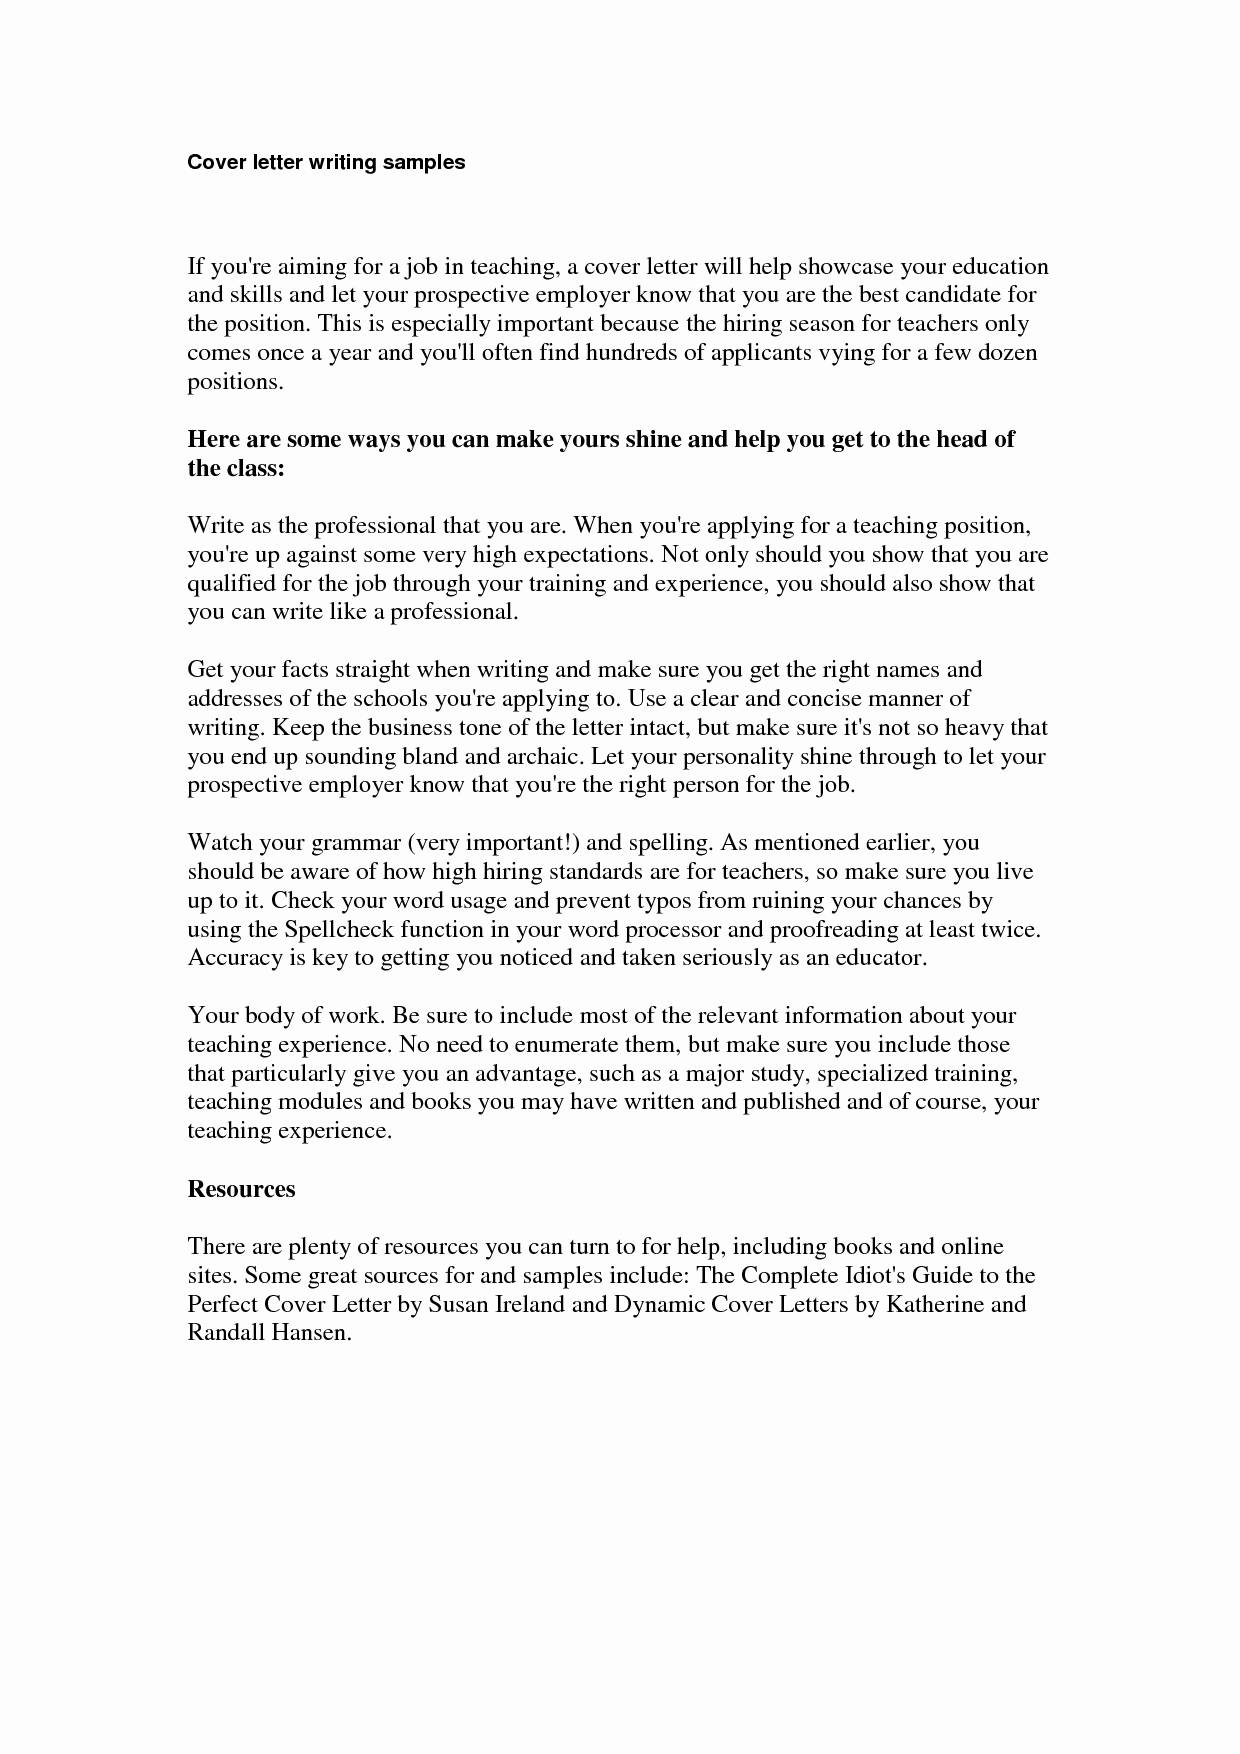 Cover Letter Template for Administrative assistant Job - who Do I Address A Cover Letter to Awesome Administrative assistant